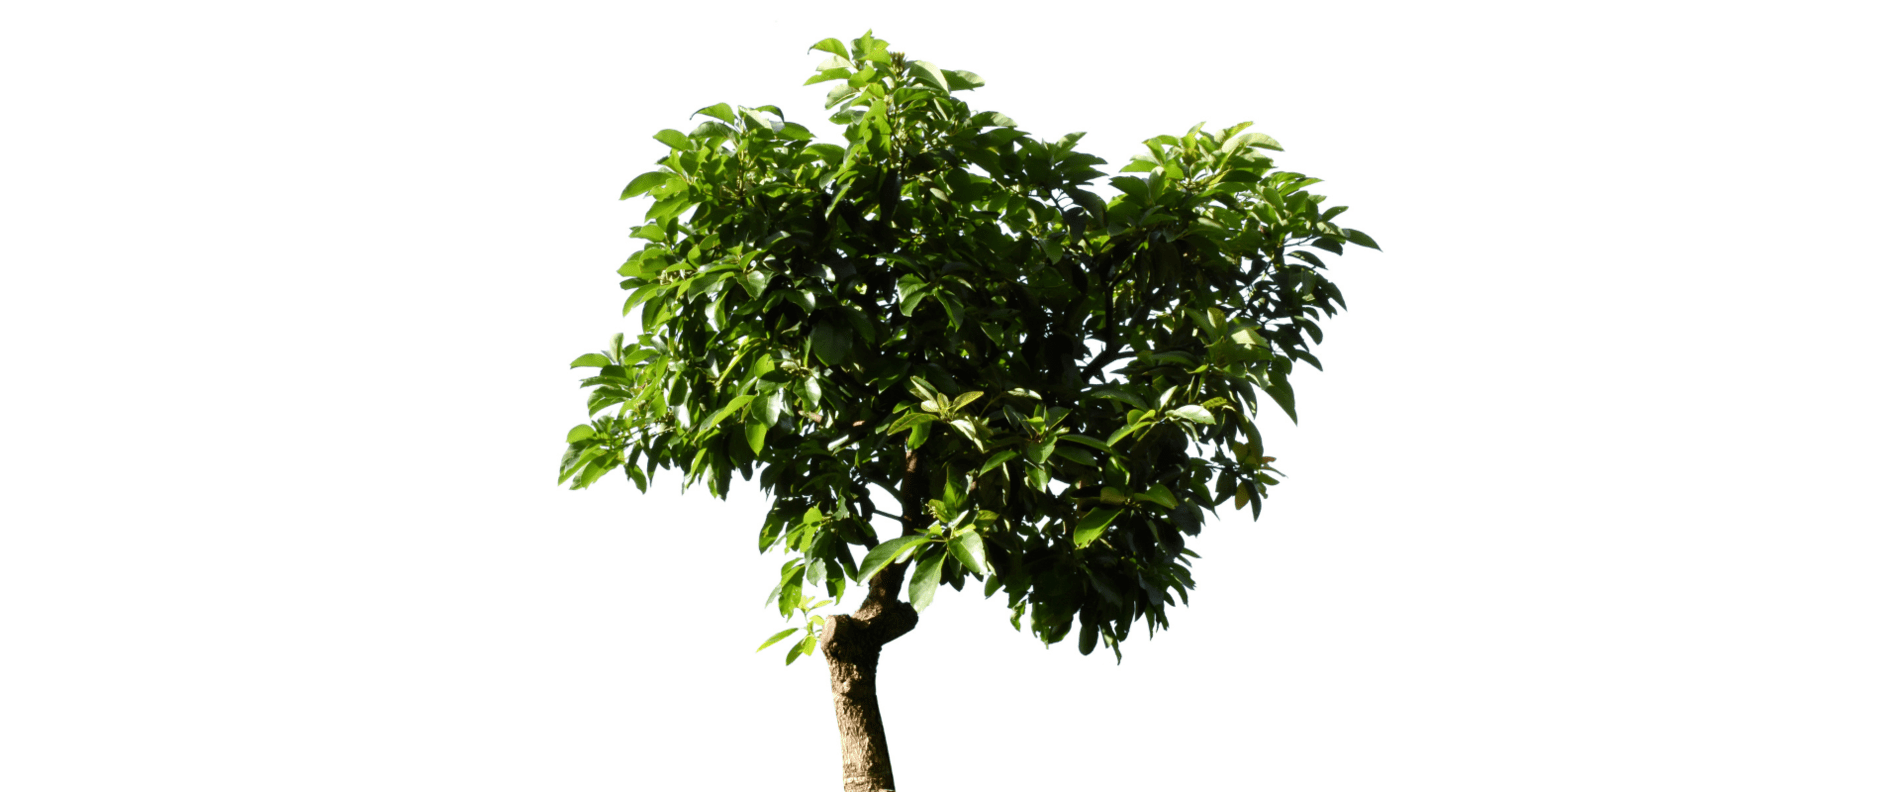 Avocado trees, growing one of the most hyped fruits in the world